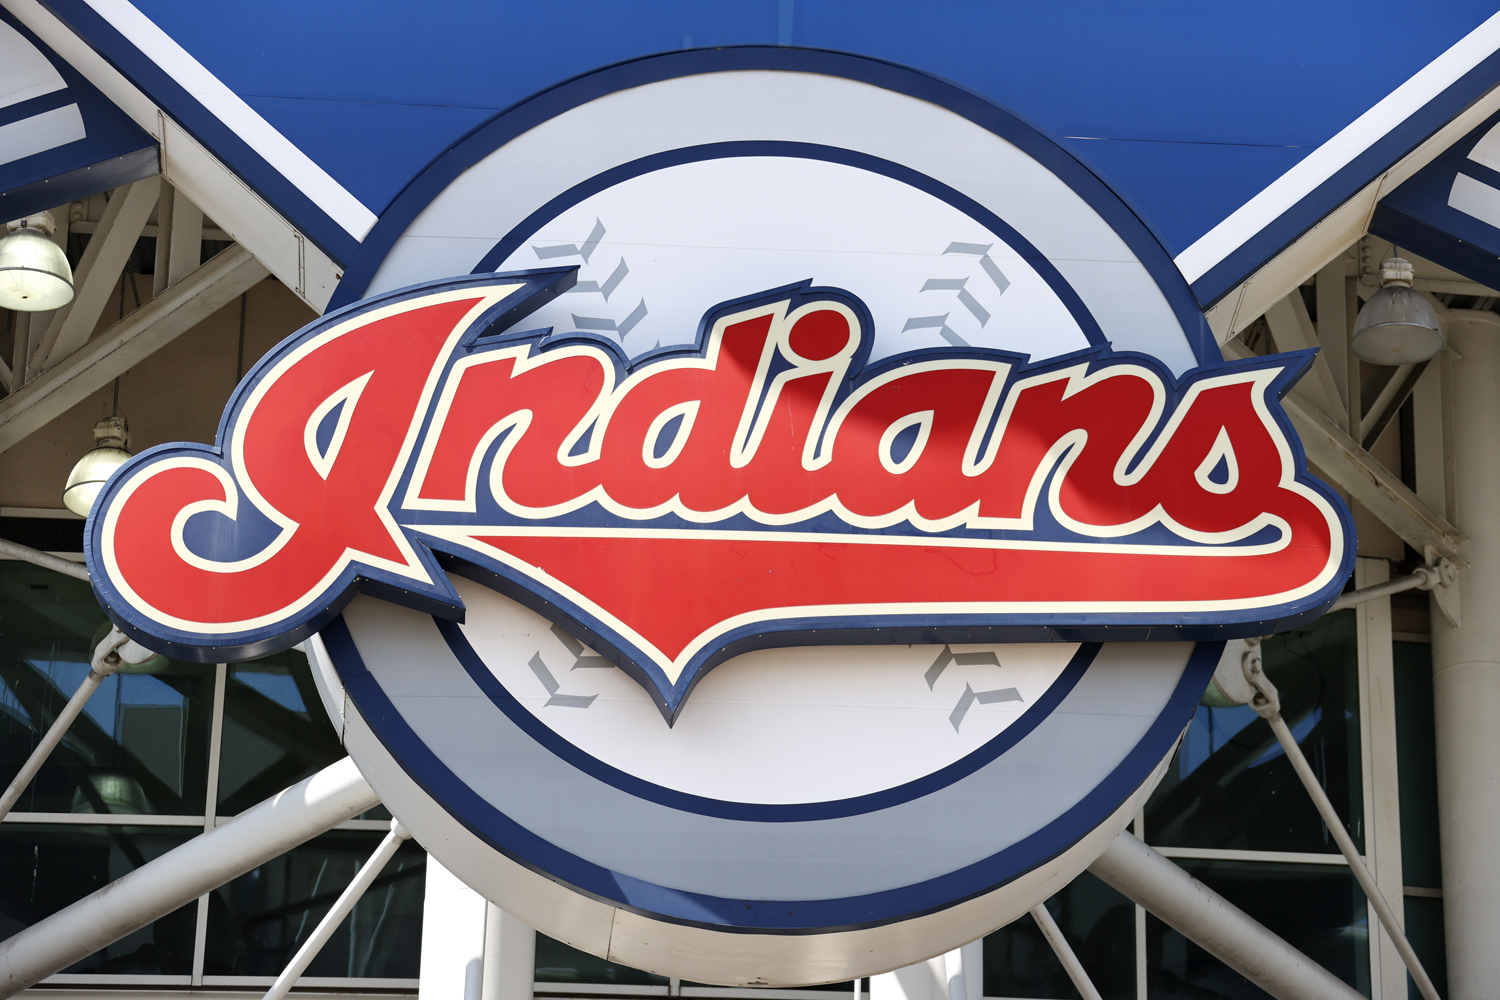 The Cleveland Indians team logo